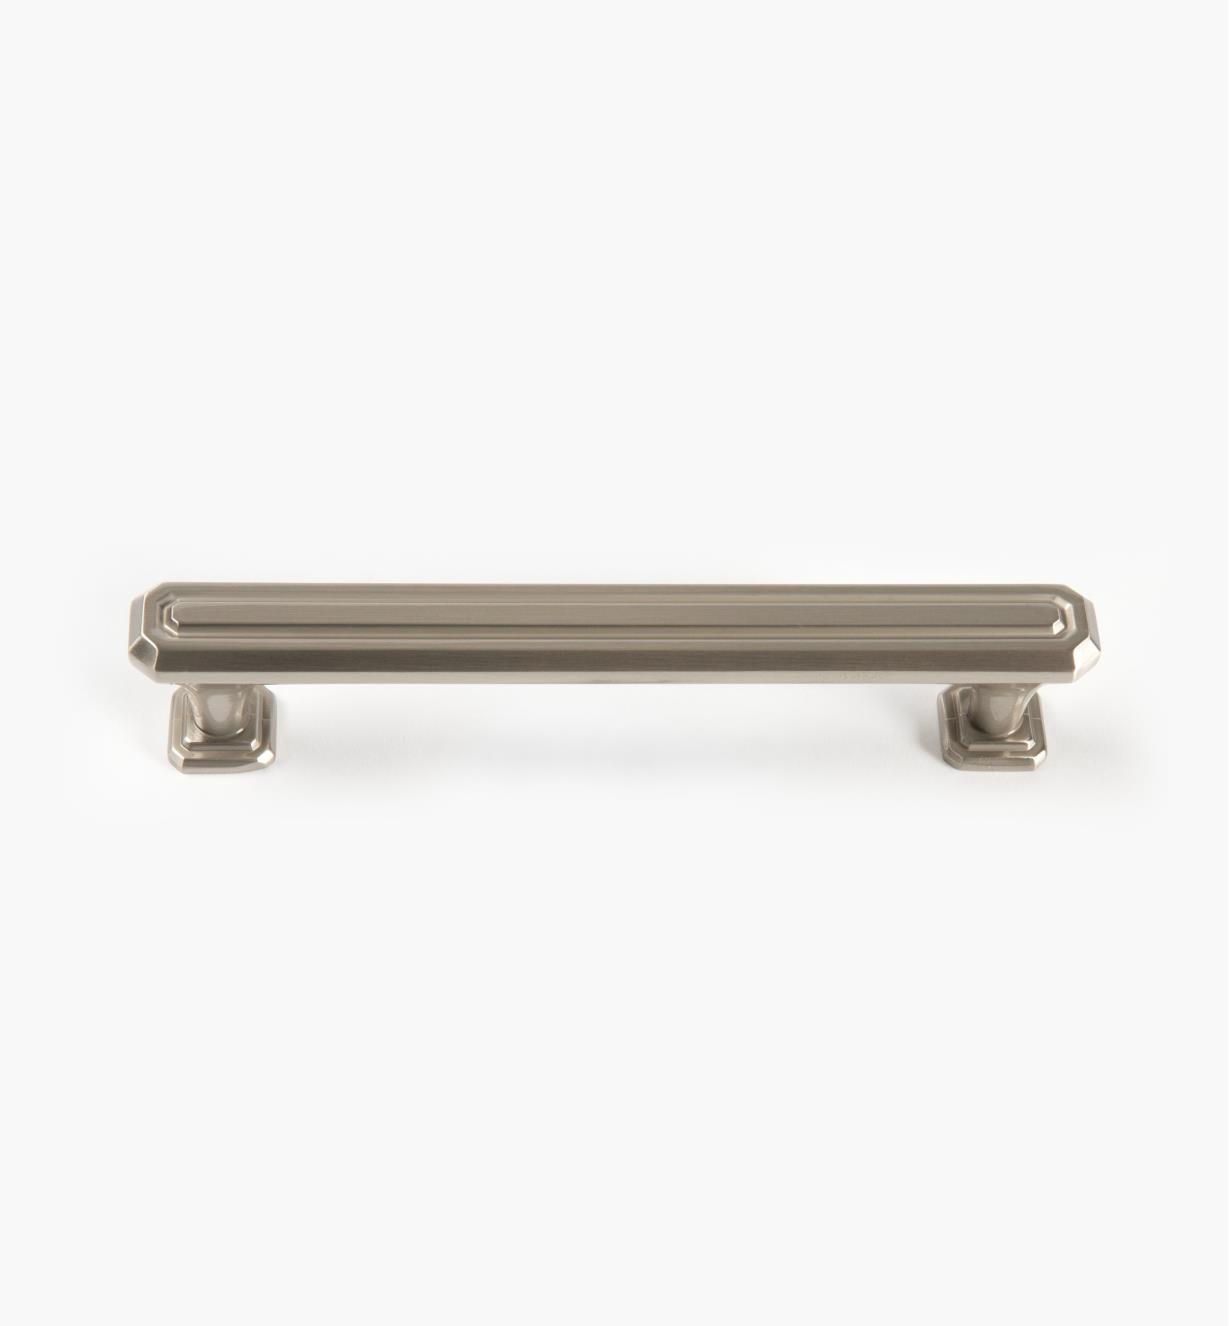 02A1629 - Wells Satin Nickel 160mm x 40mm Handle, each